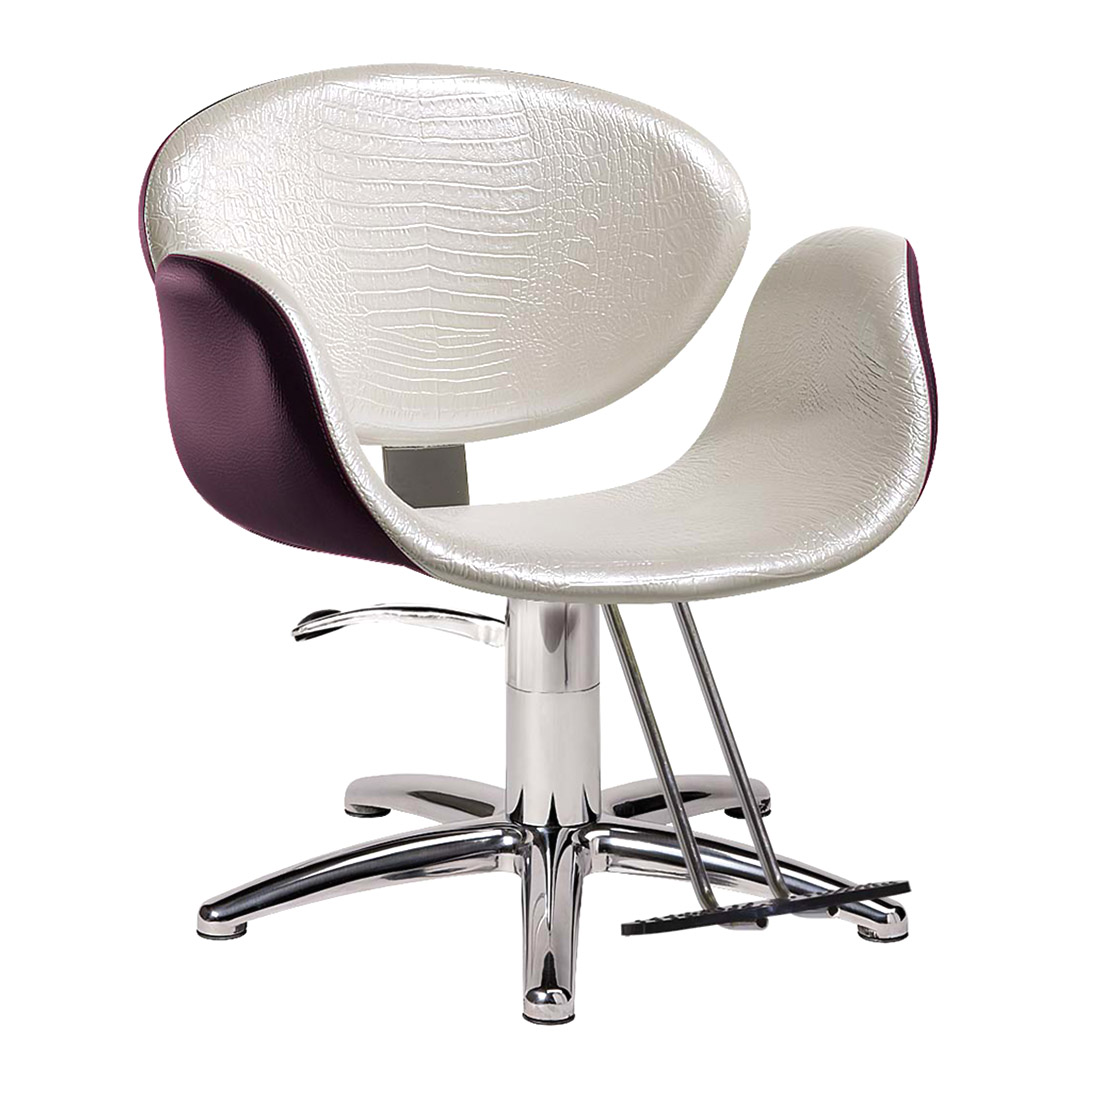 Amber Modern Styling Chair by Salon Ambience alternative product image 2